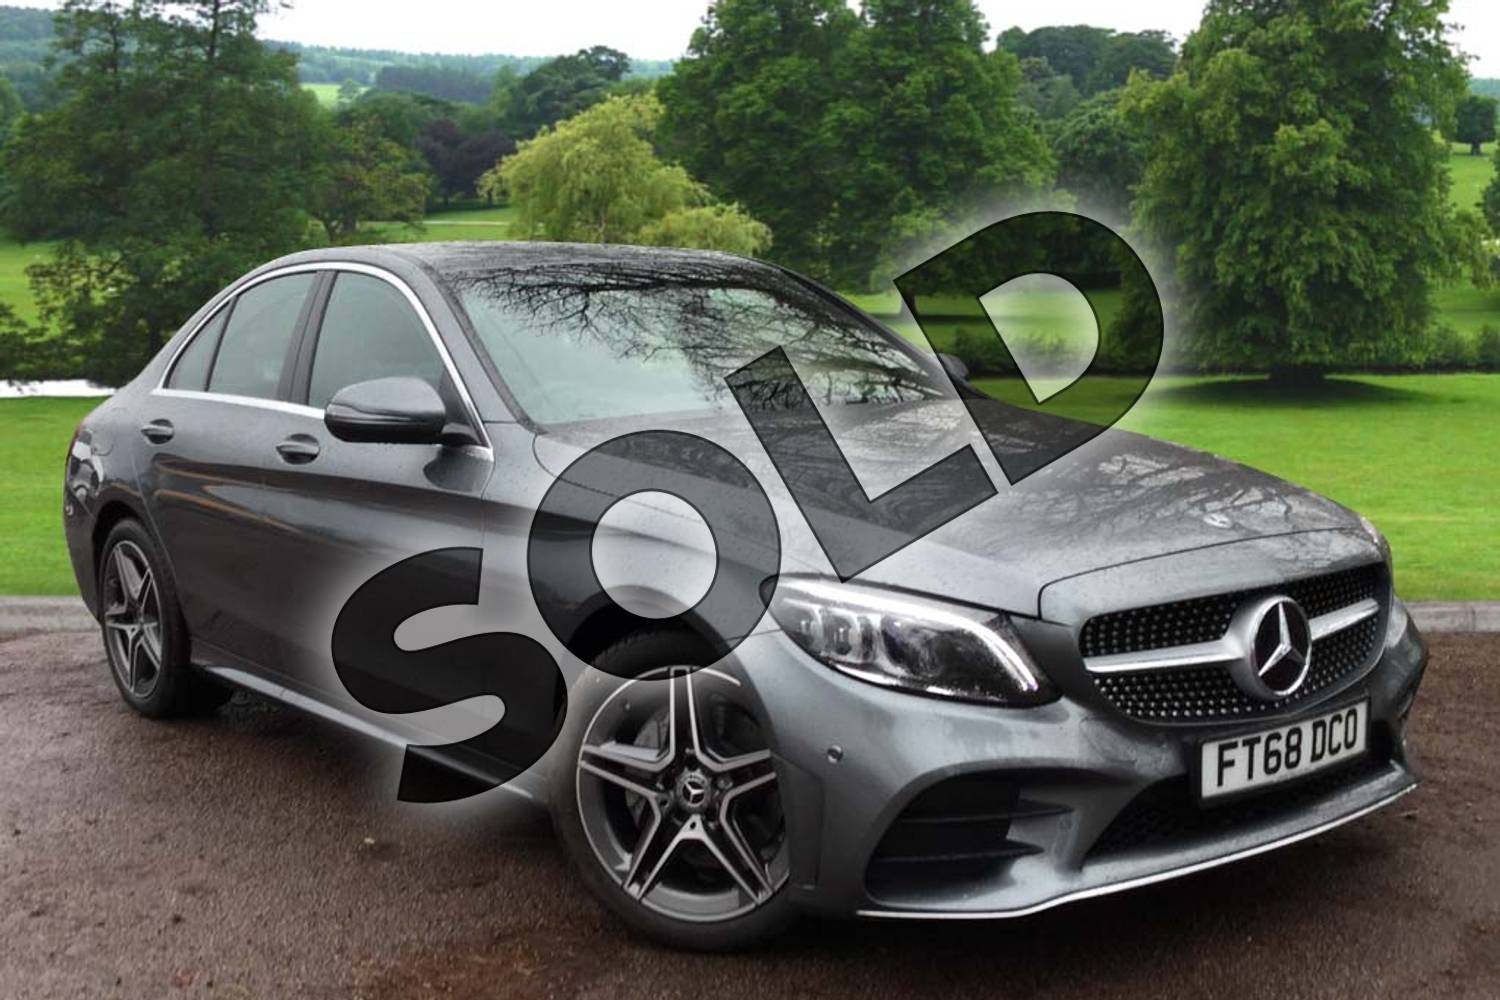 2018 Mercedes-Benz C Class Saloon C200 AMG Line Premium 4dr 9G-Tronic in selenite grey metallic at Mercedes-Benz of Grimsby